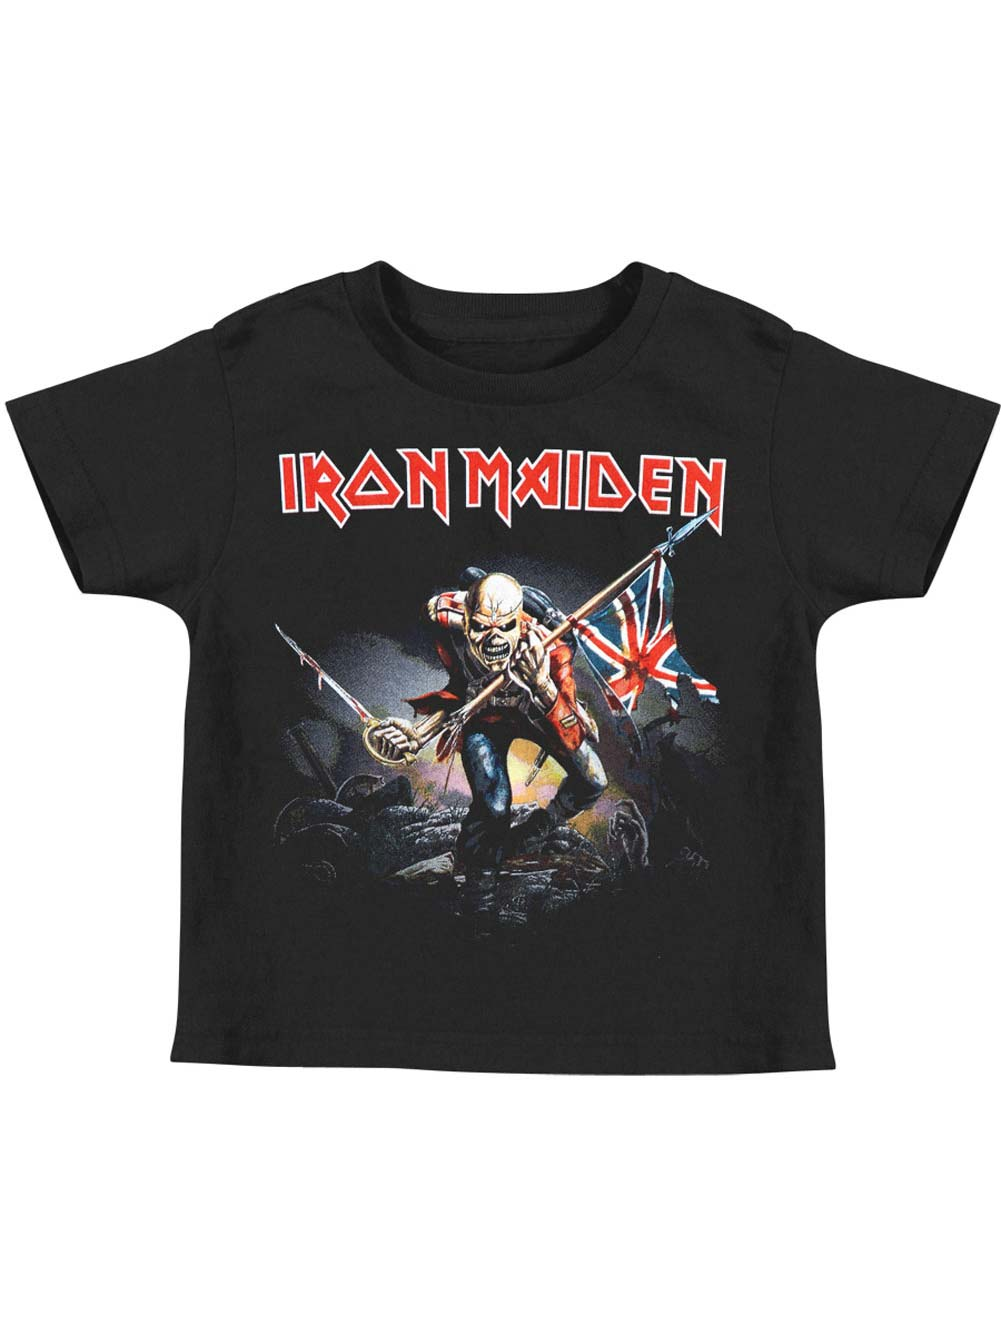 Authentic IRON MAIDEN The Trooper Kid Toddler T-Shirt 2T 3T 4T NEW